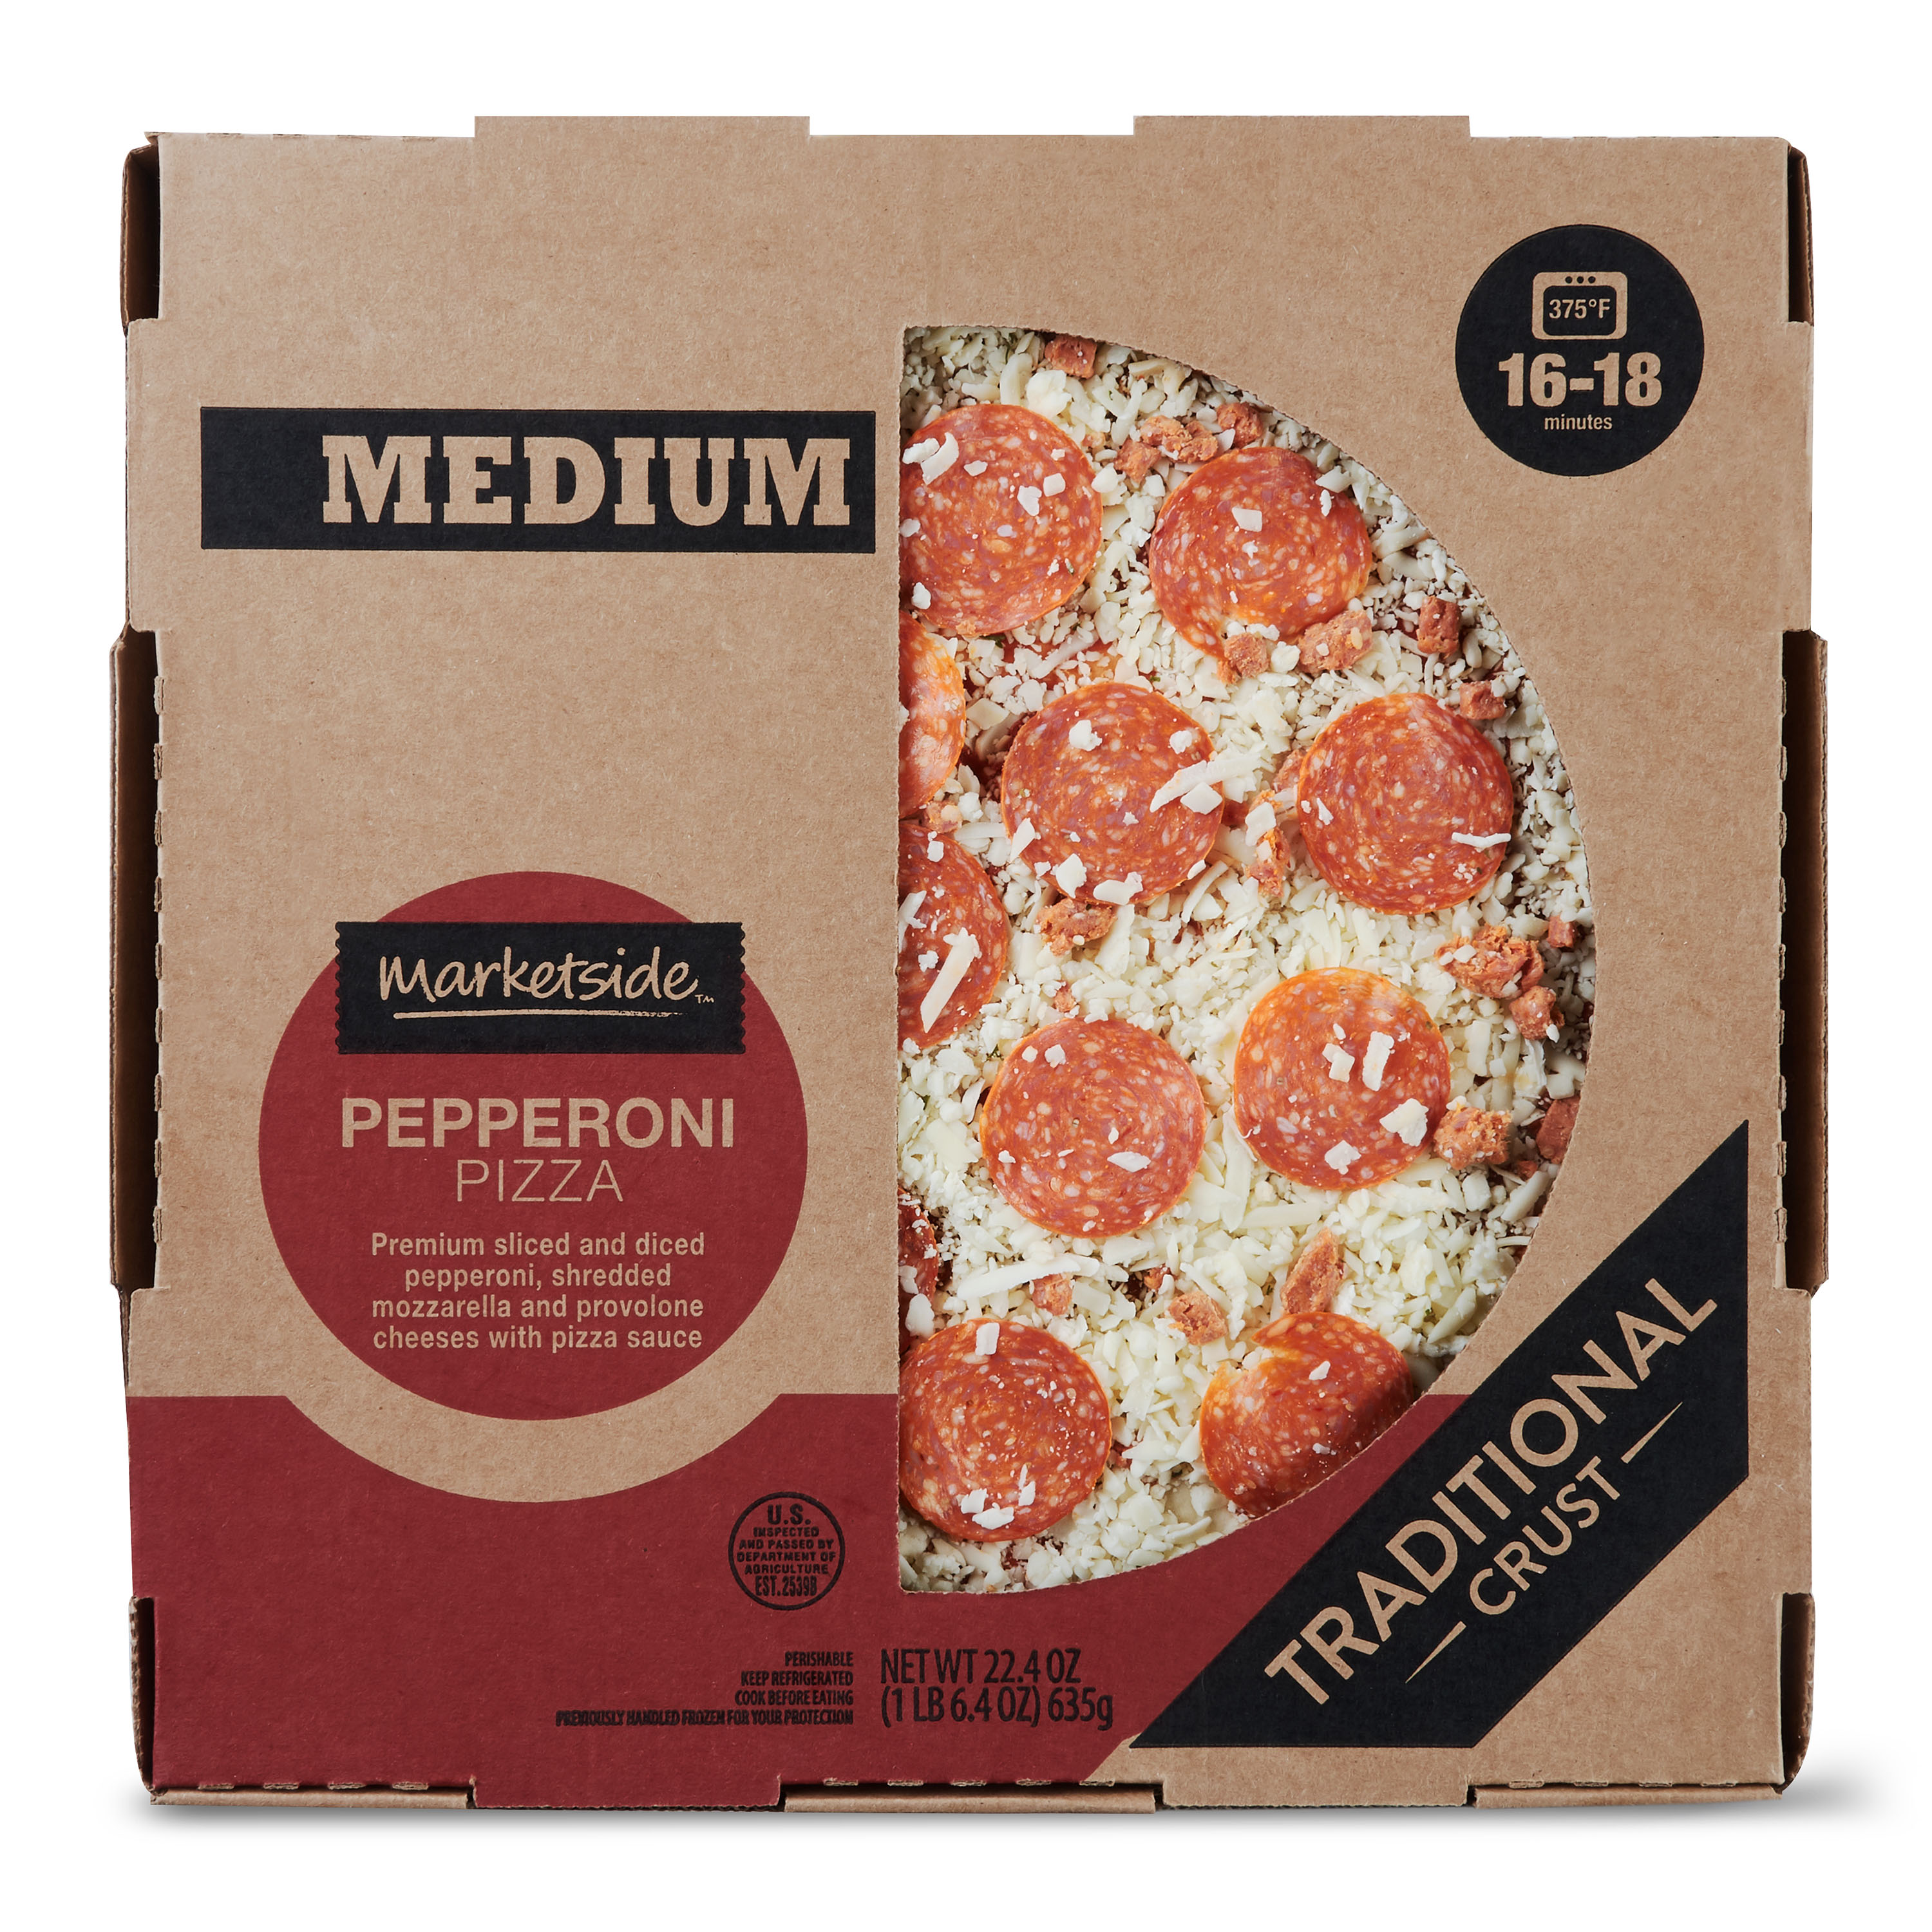 Marketside Pepperoni Pizza, Medium